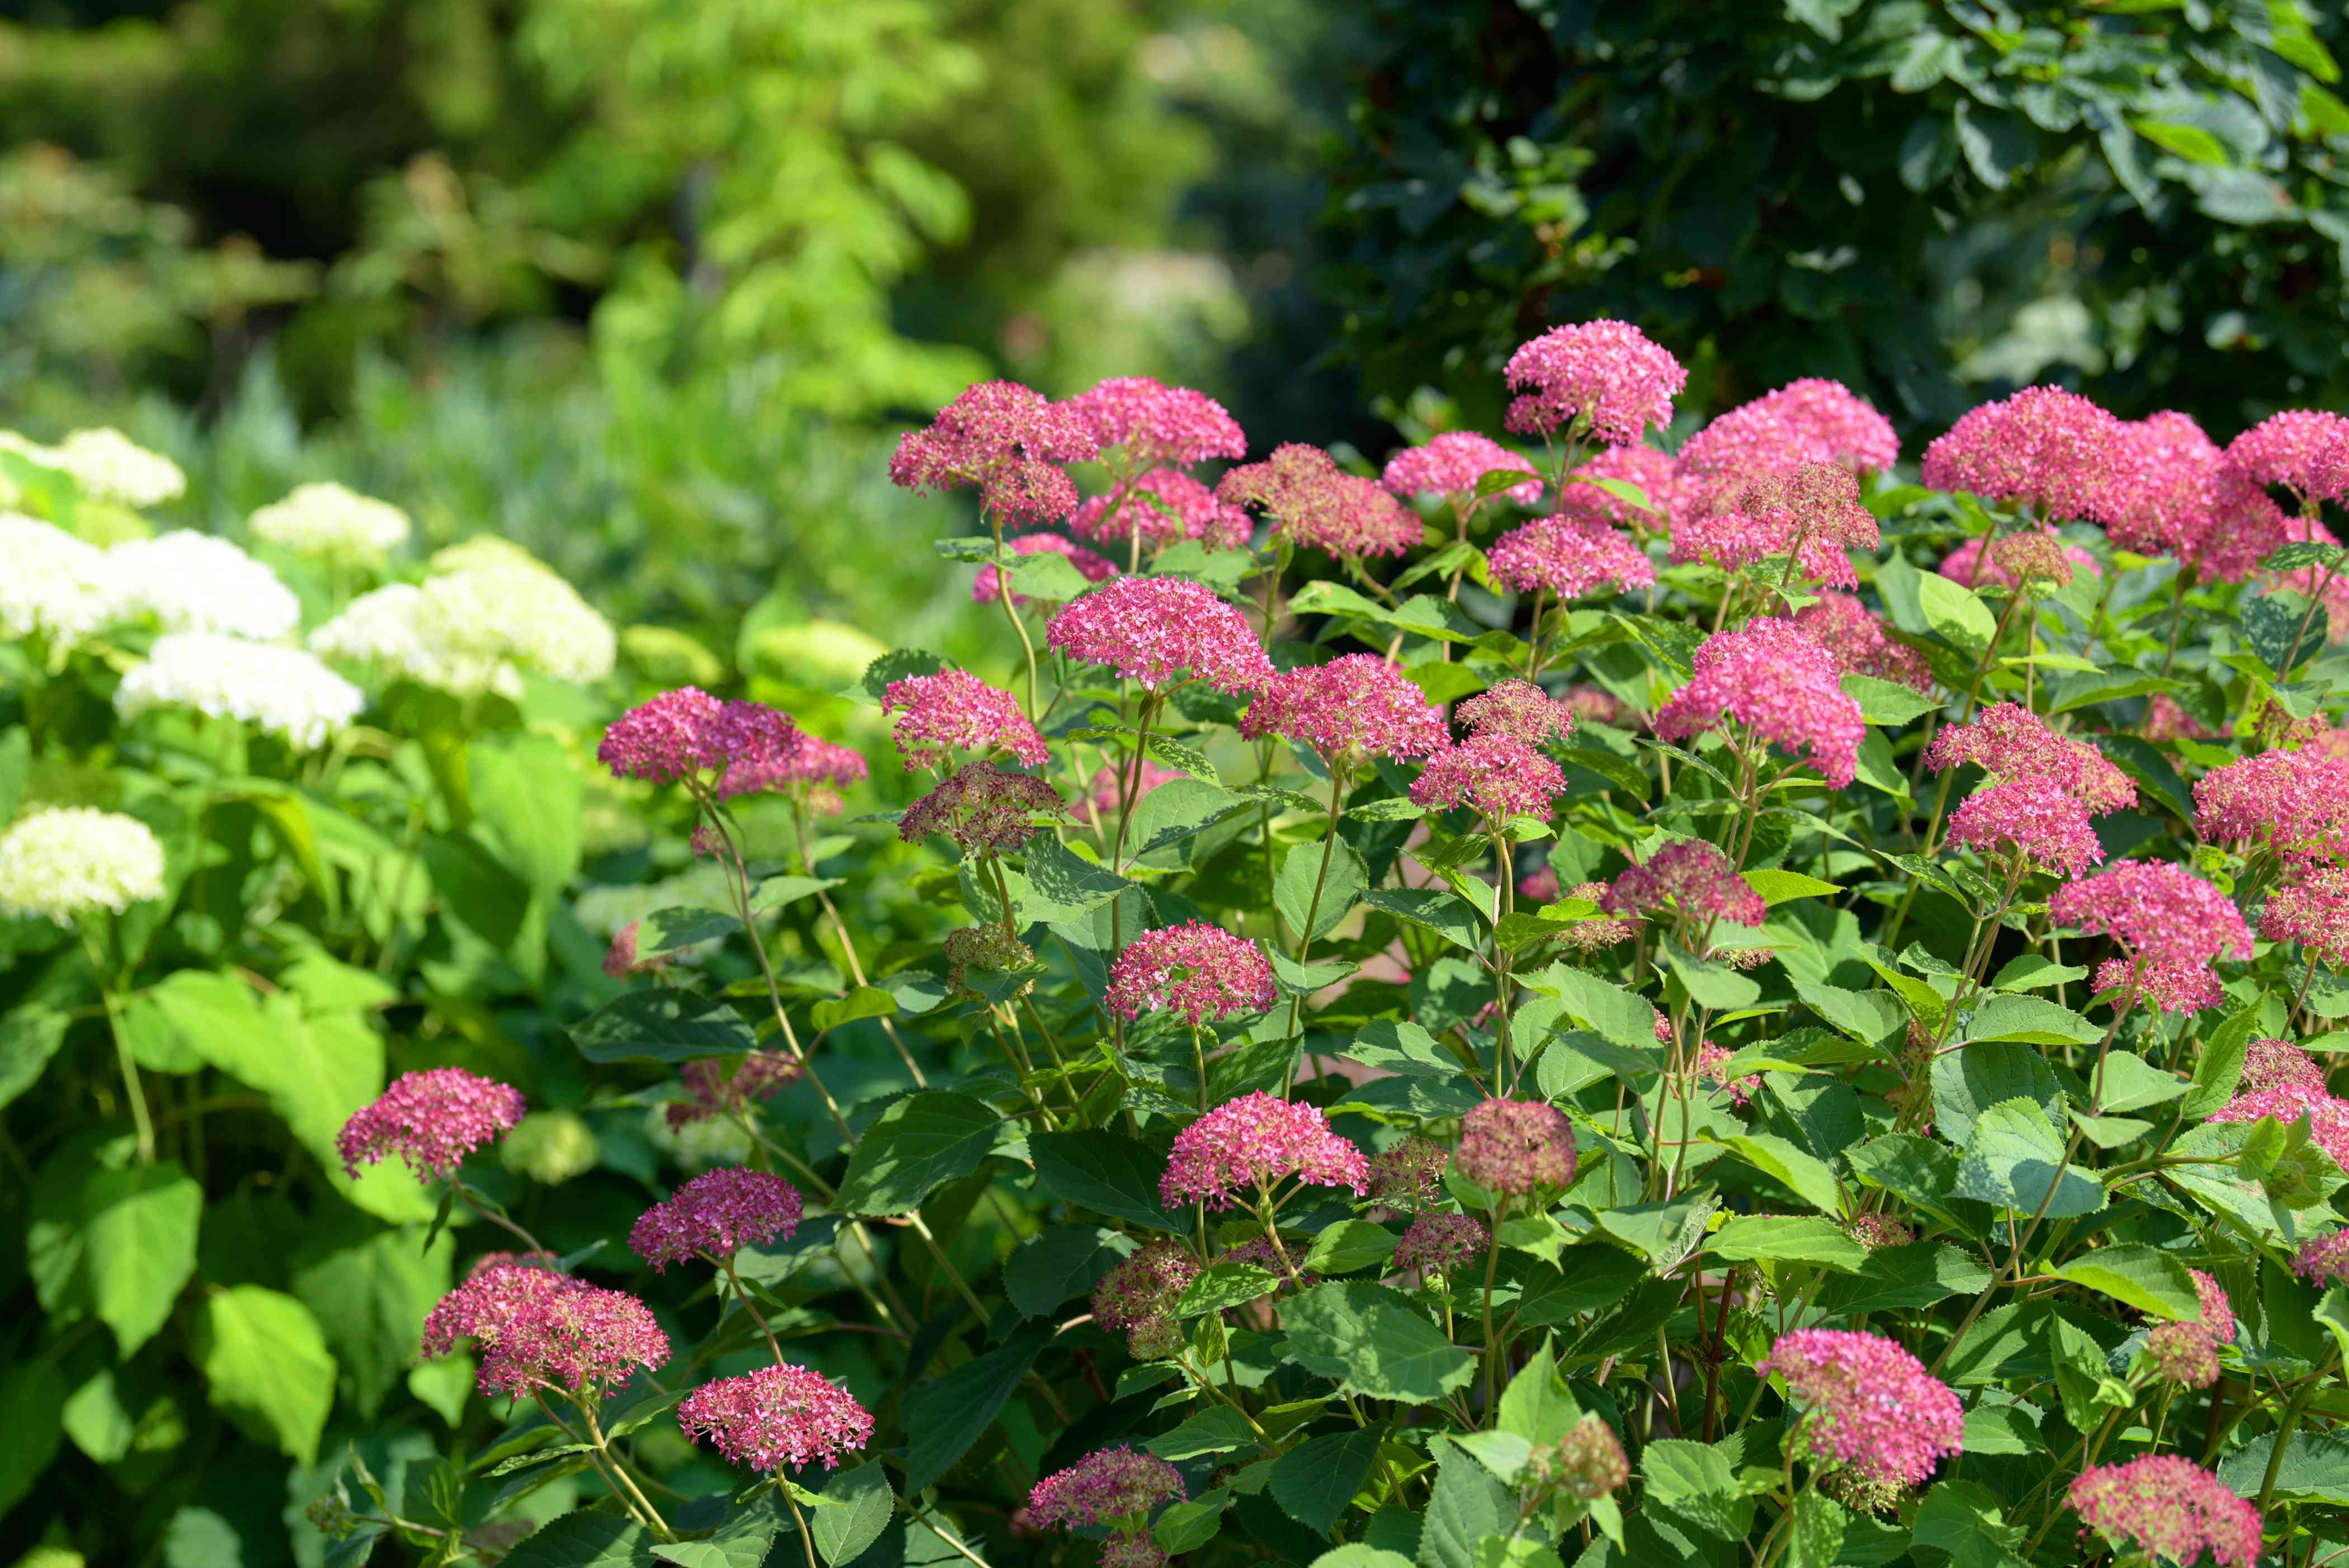 Invincibelle spirit hydrangea shrubs with pink and flower head clusters on tall thin stems and large leaves